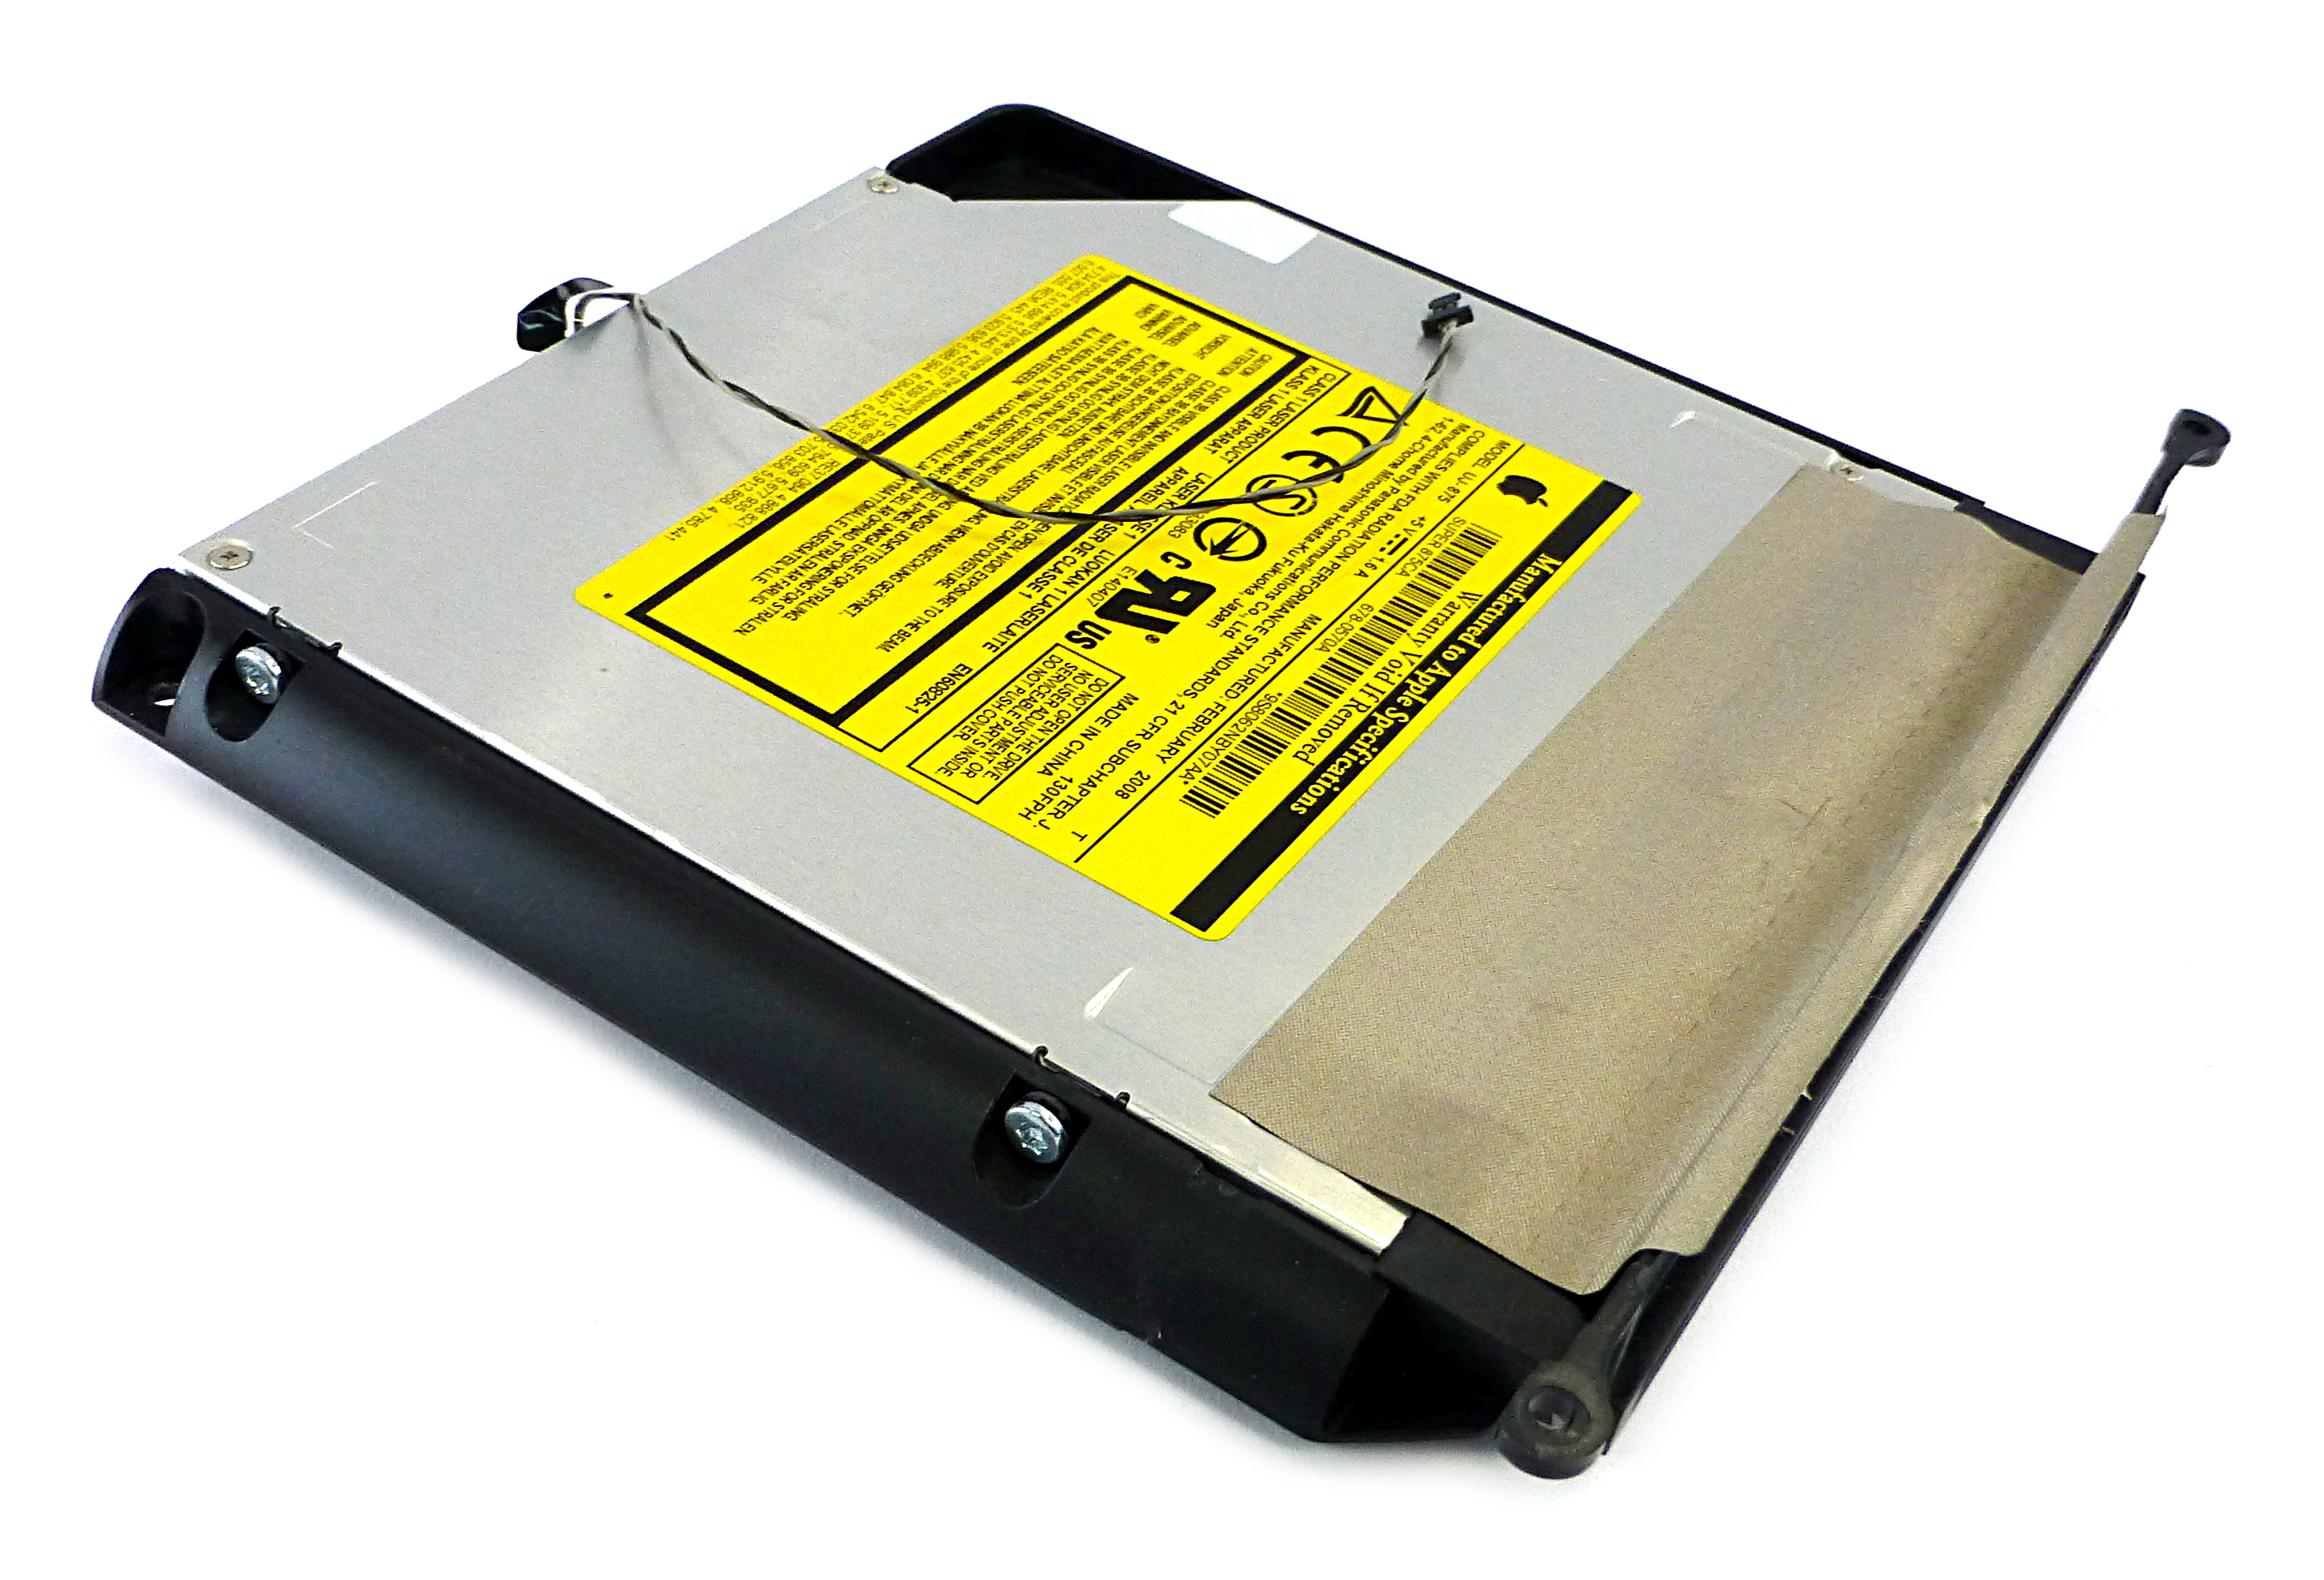 Apple iMac 2008 678-0570A Super 875CA UJ-875 DVDRW Drive